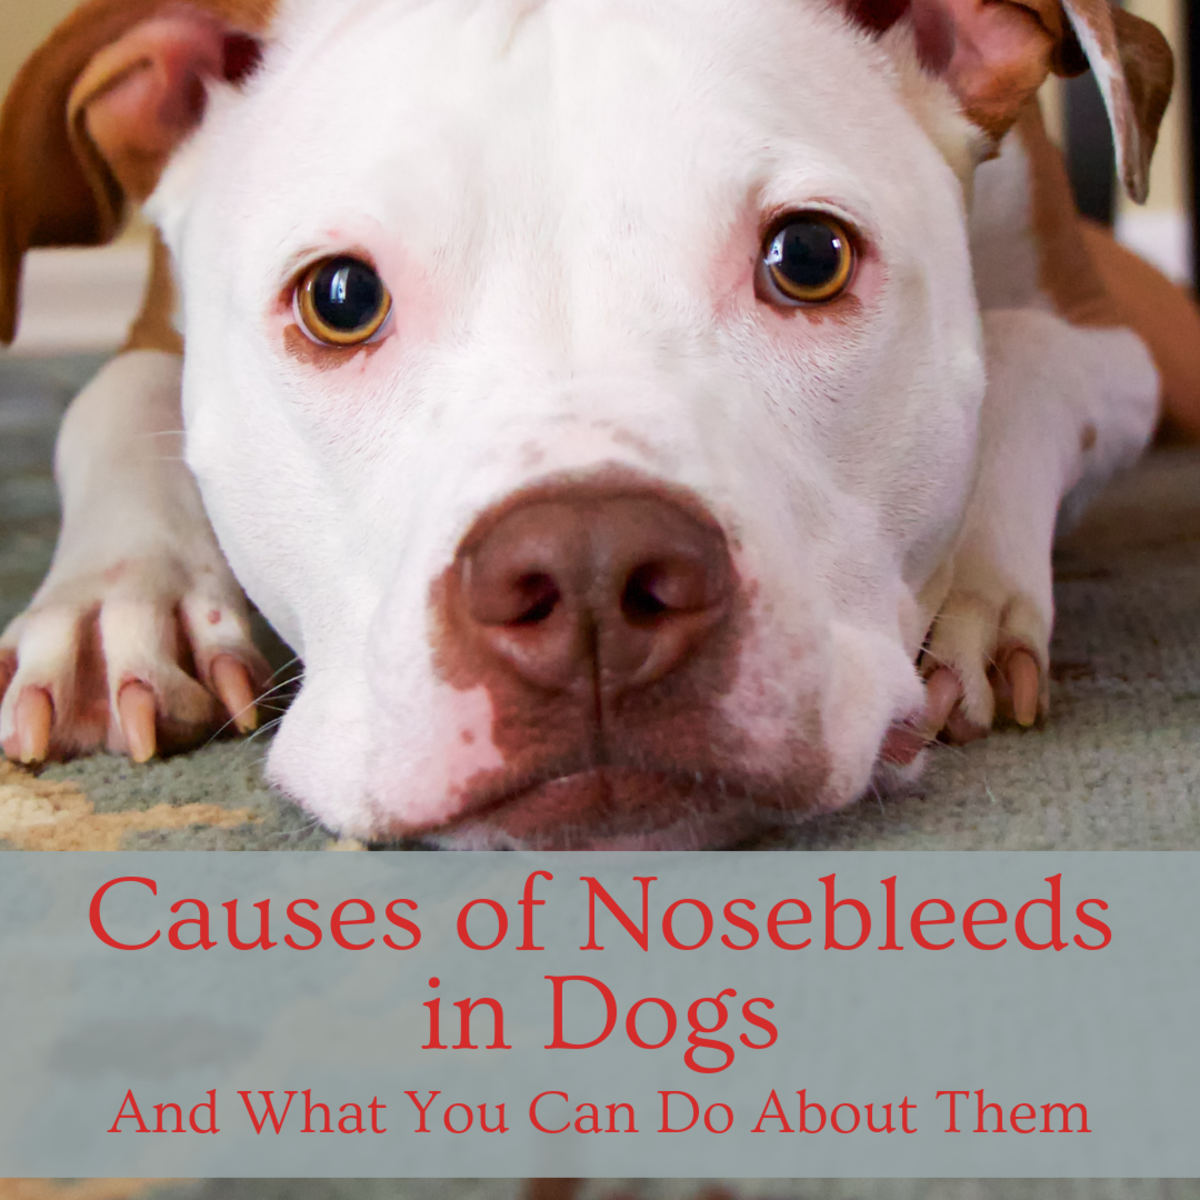 If your dog's nose starts bleeding it can be pretty scary.  Find out what to do in this situation.